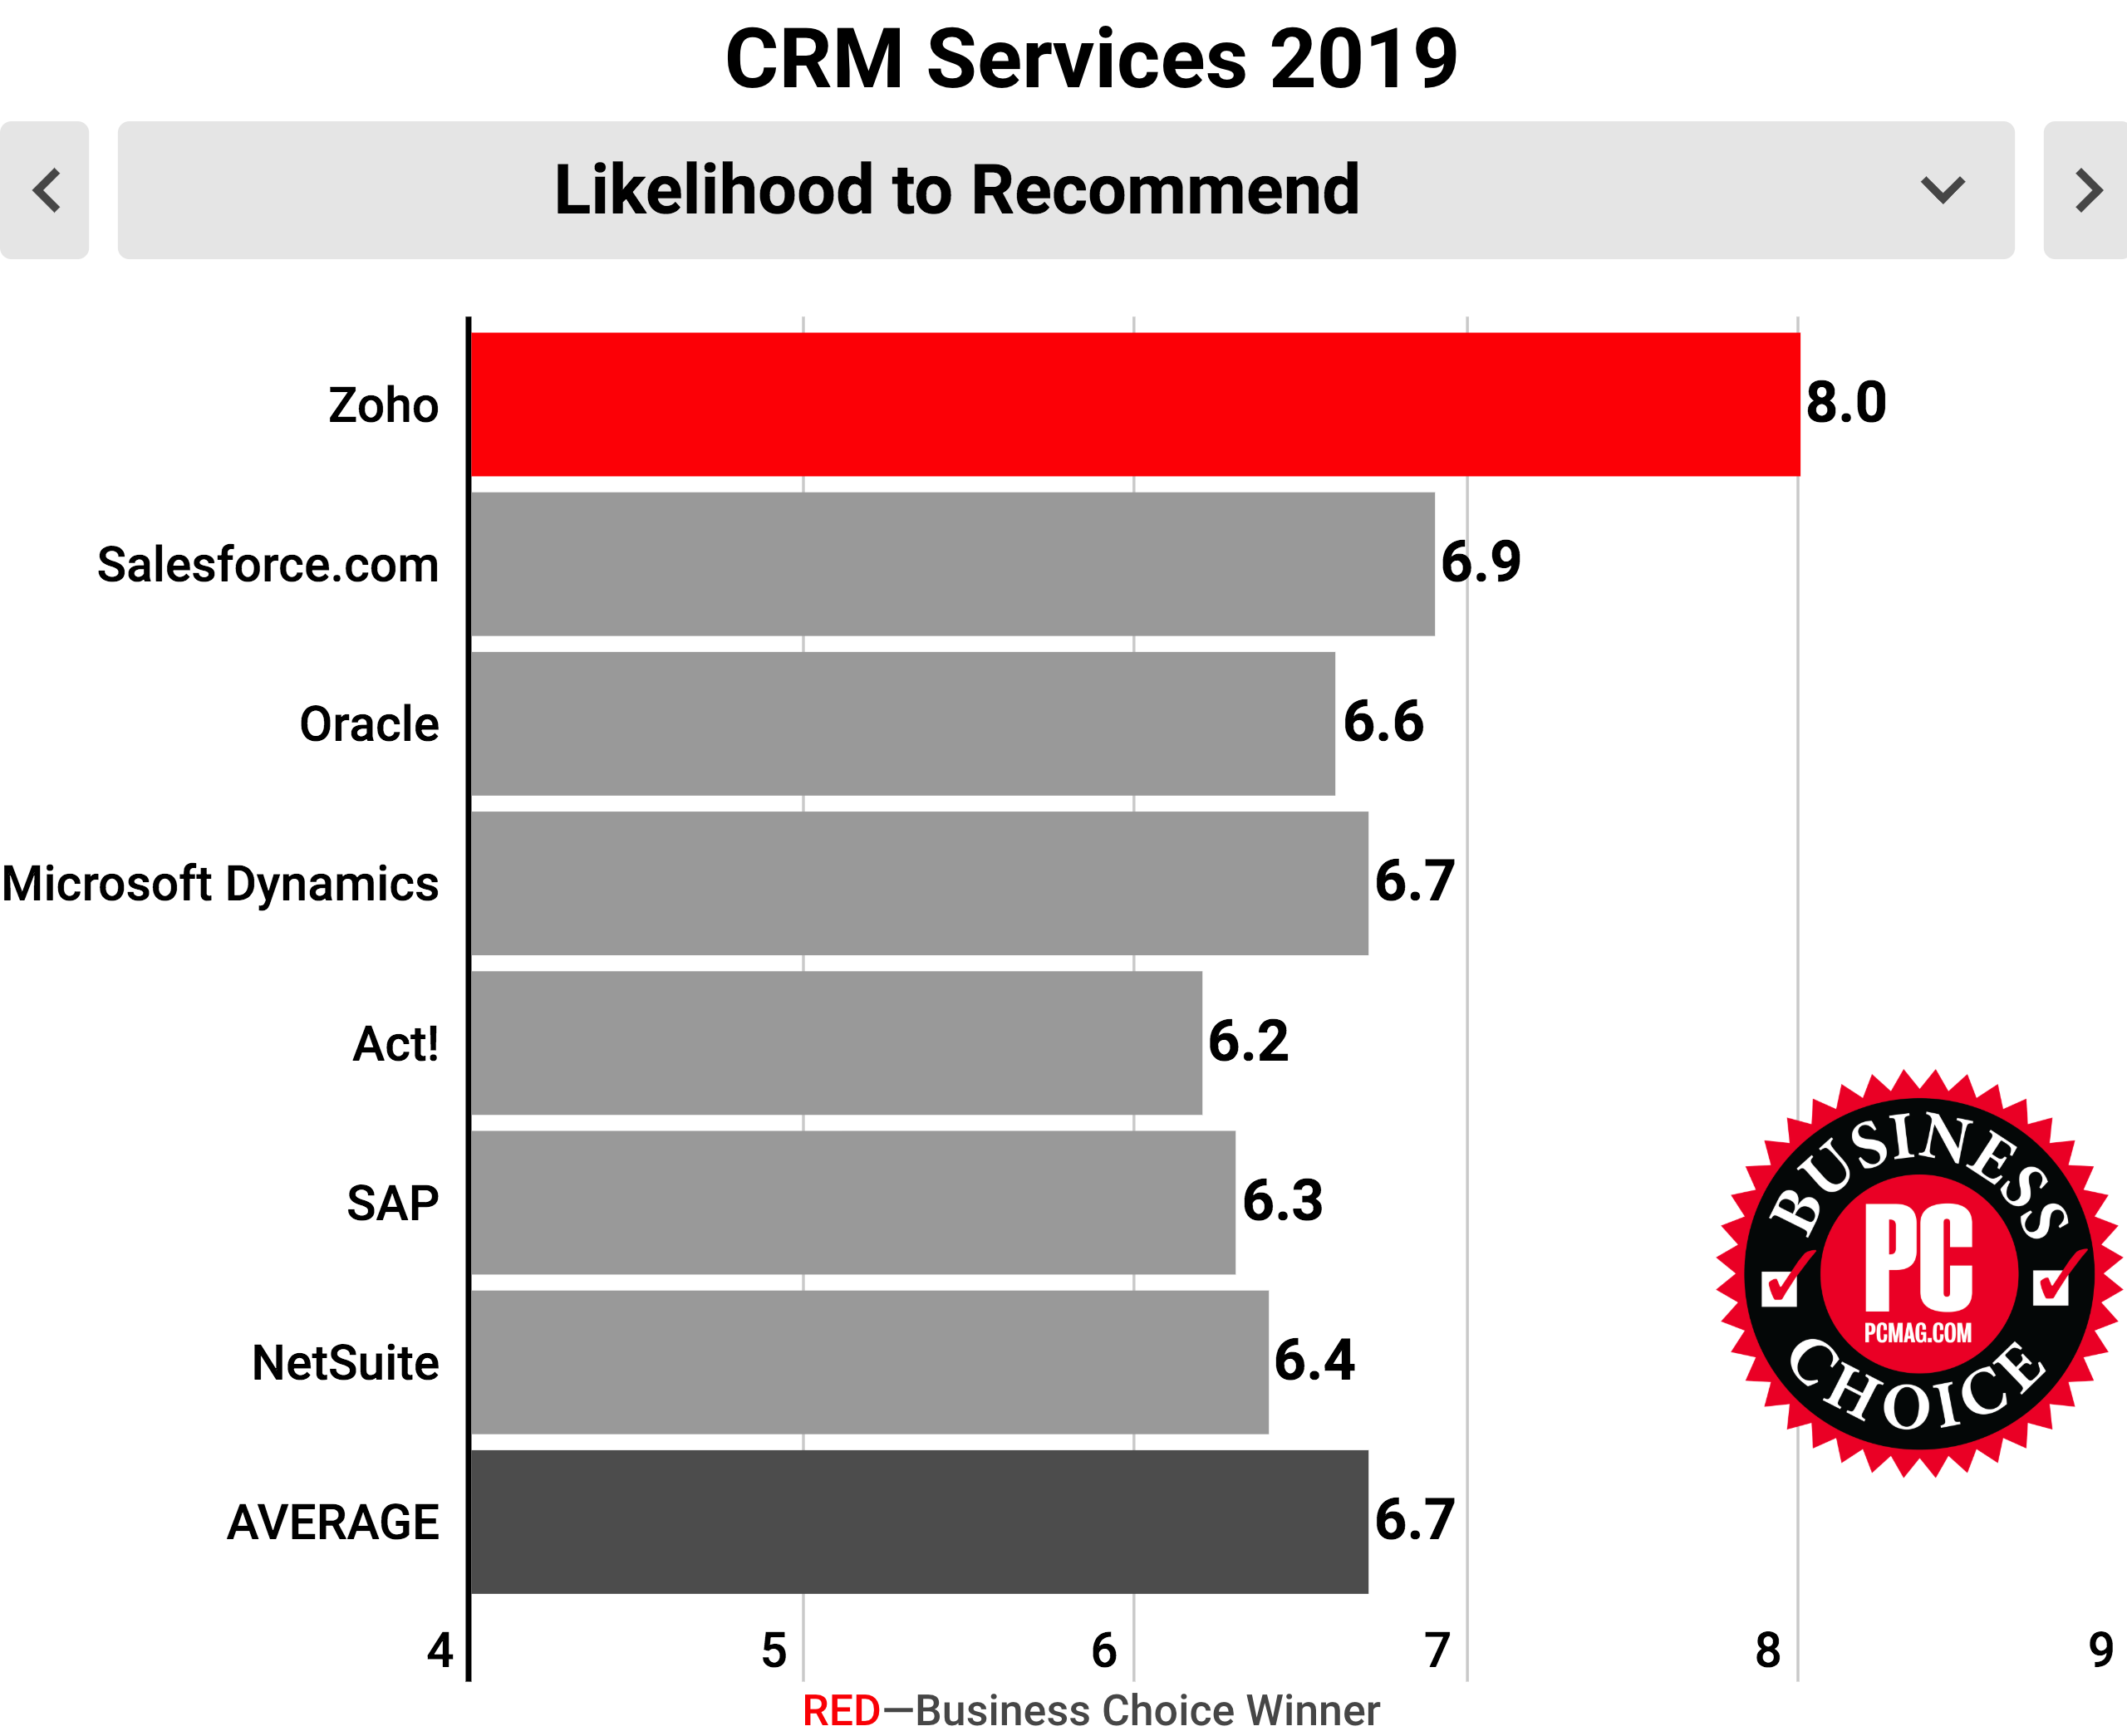 Most recommended CRM software - Zoho CRM